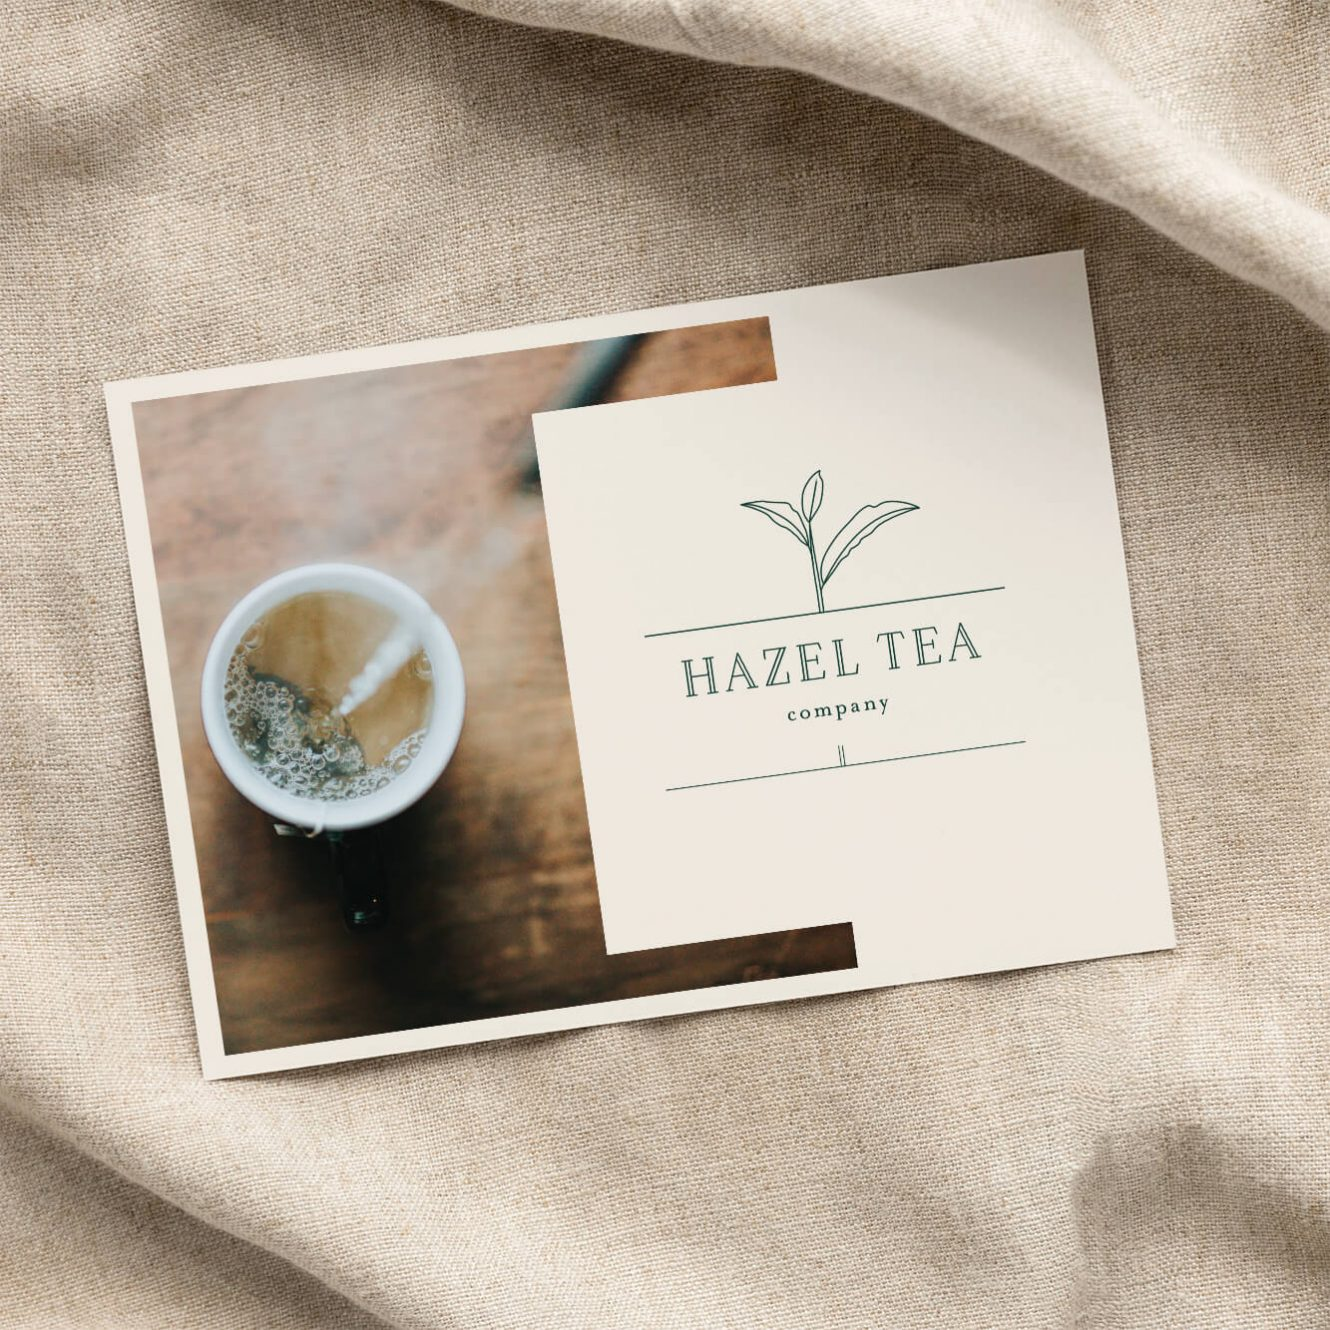 Hazel Tea Company Logo and Packaging Design - concept project